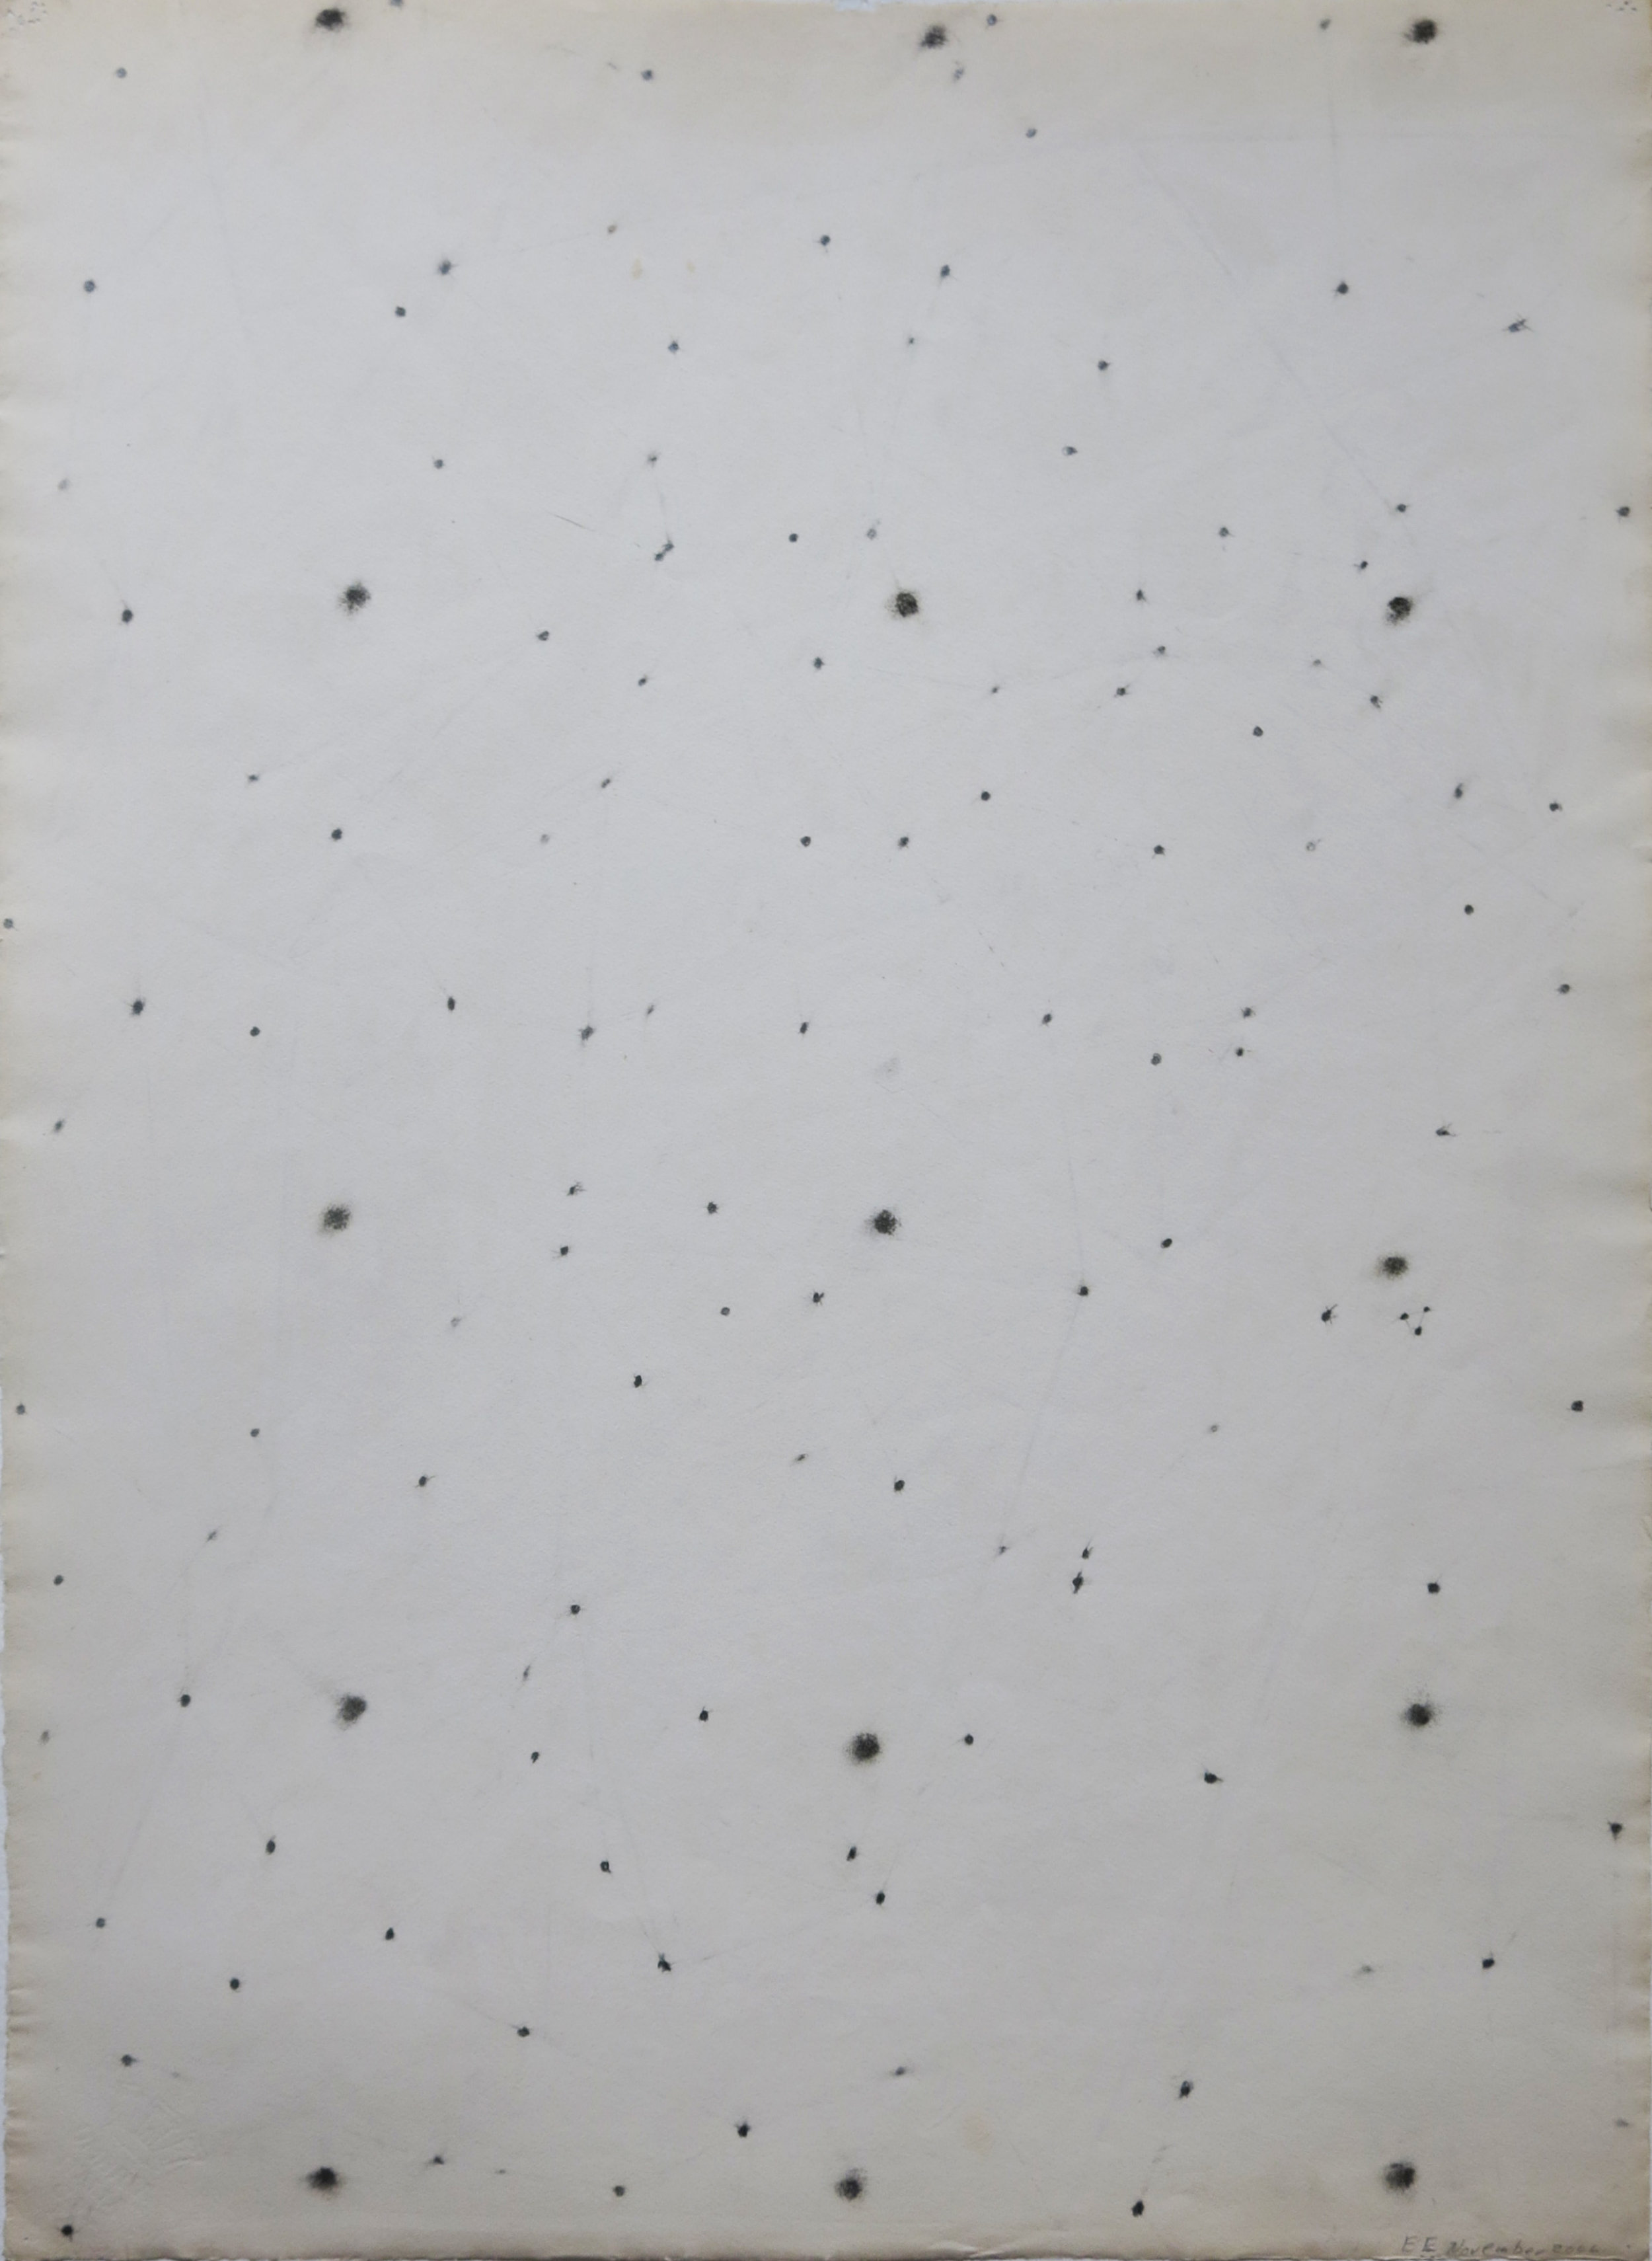 Edward Finnegan,  (Constellation Series),  November, 2006, Graphite on paper, 27.5h x 20w in.